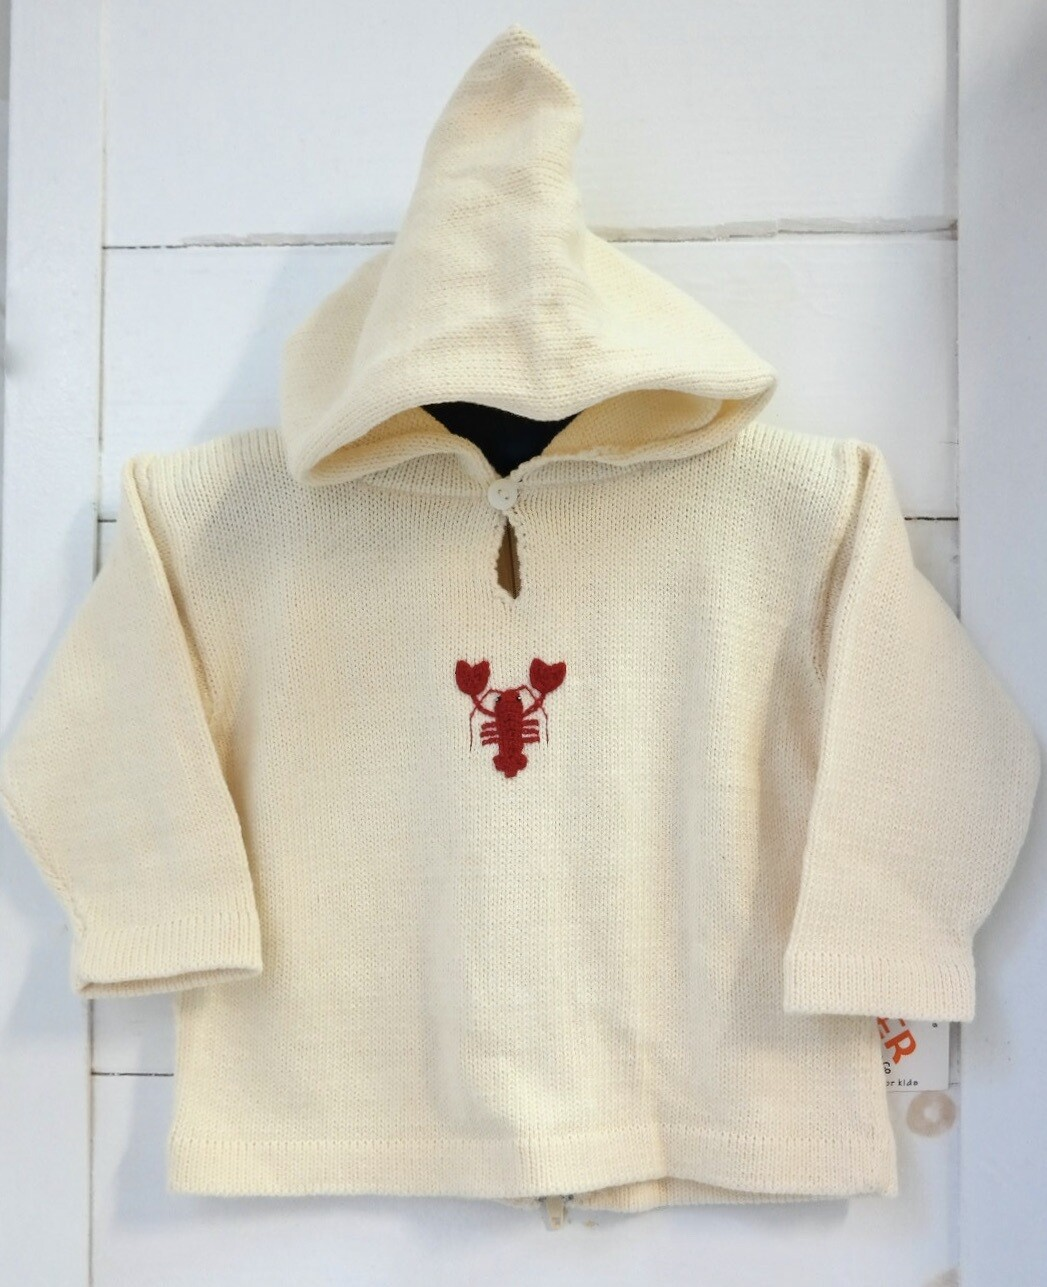 Claver Zip up hooded sweater - 24 mos ecru cotton